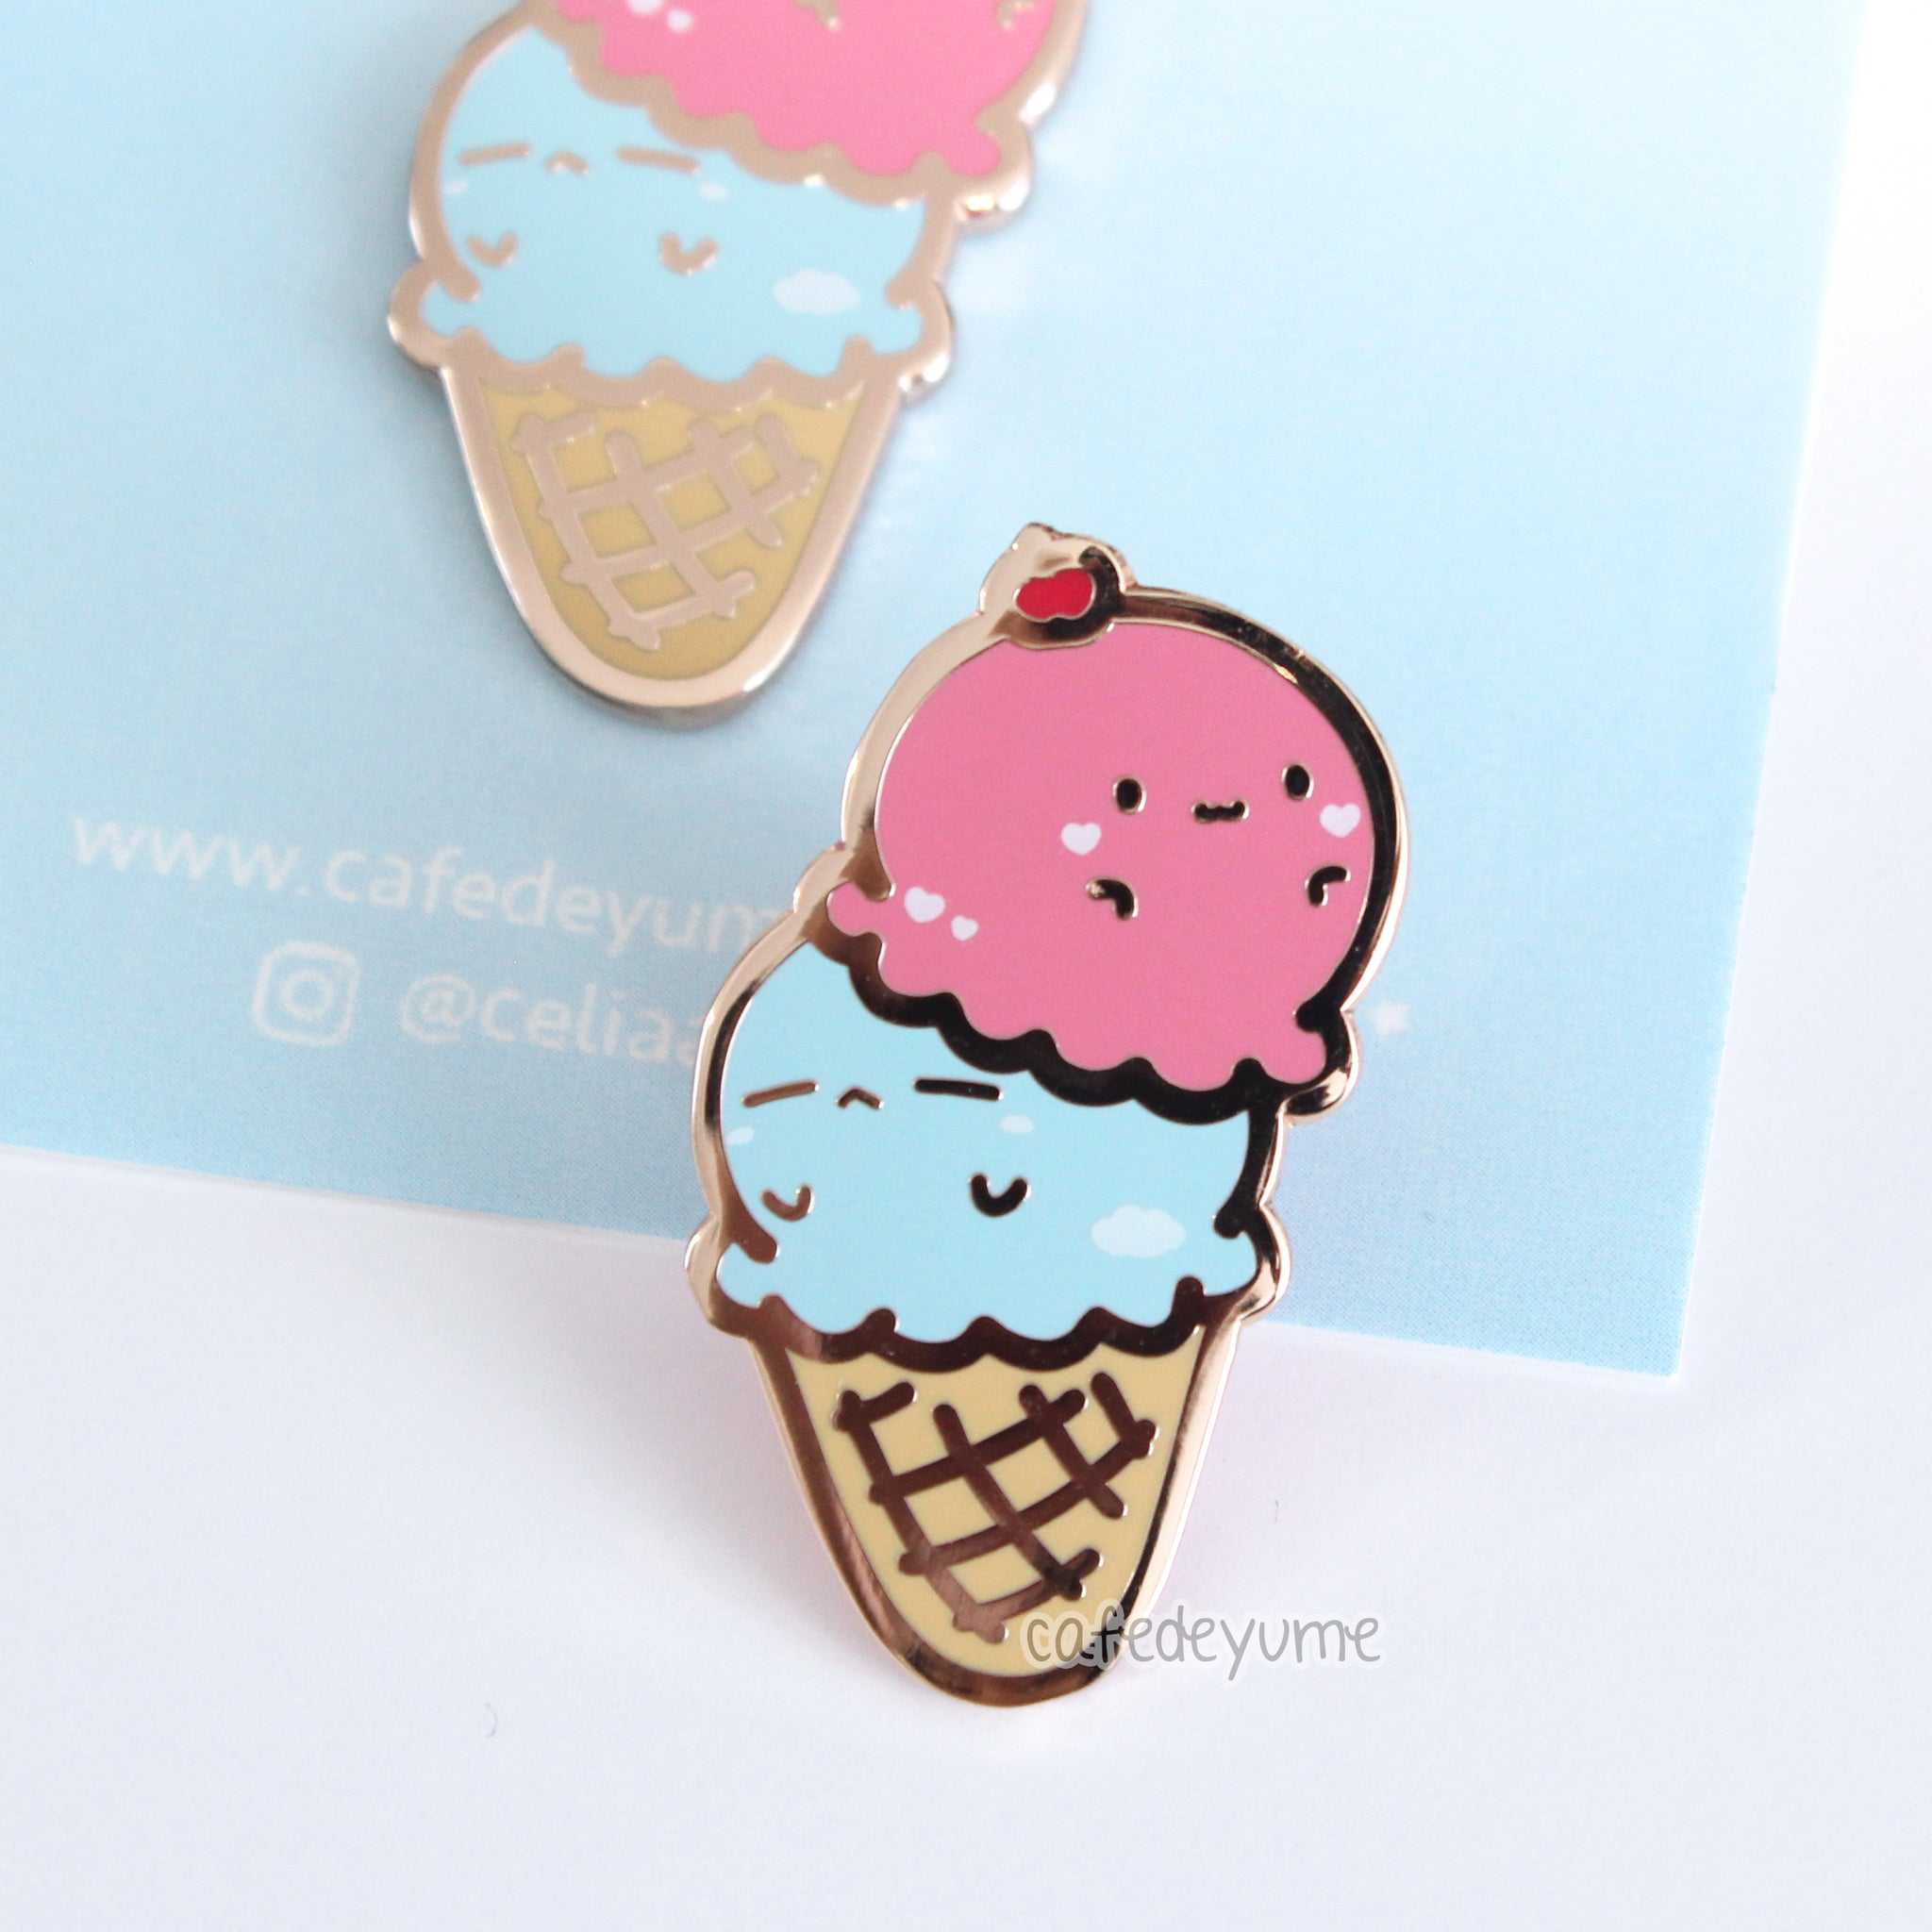 sweet dreams ice cream enamel pin